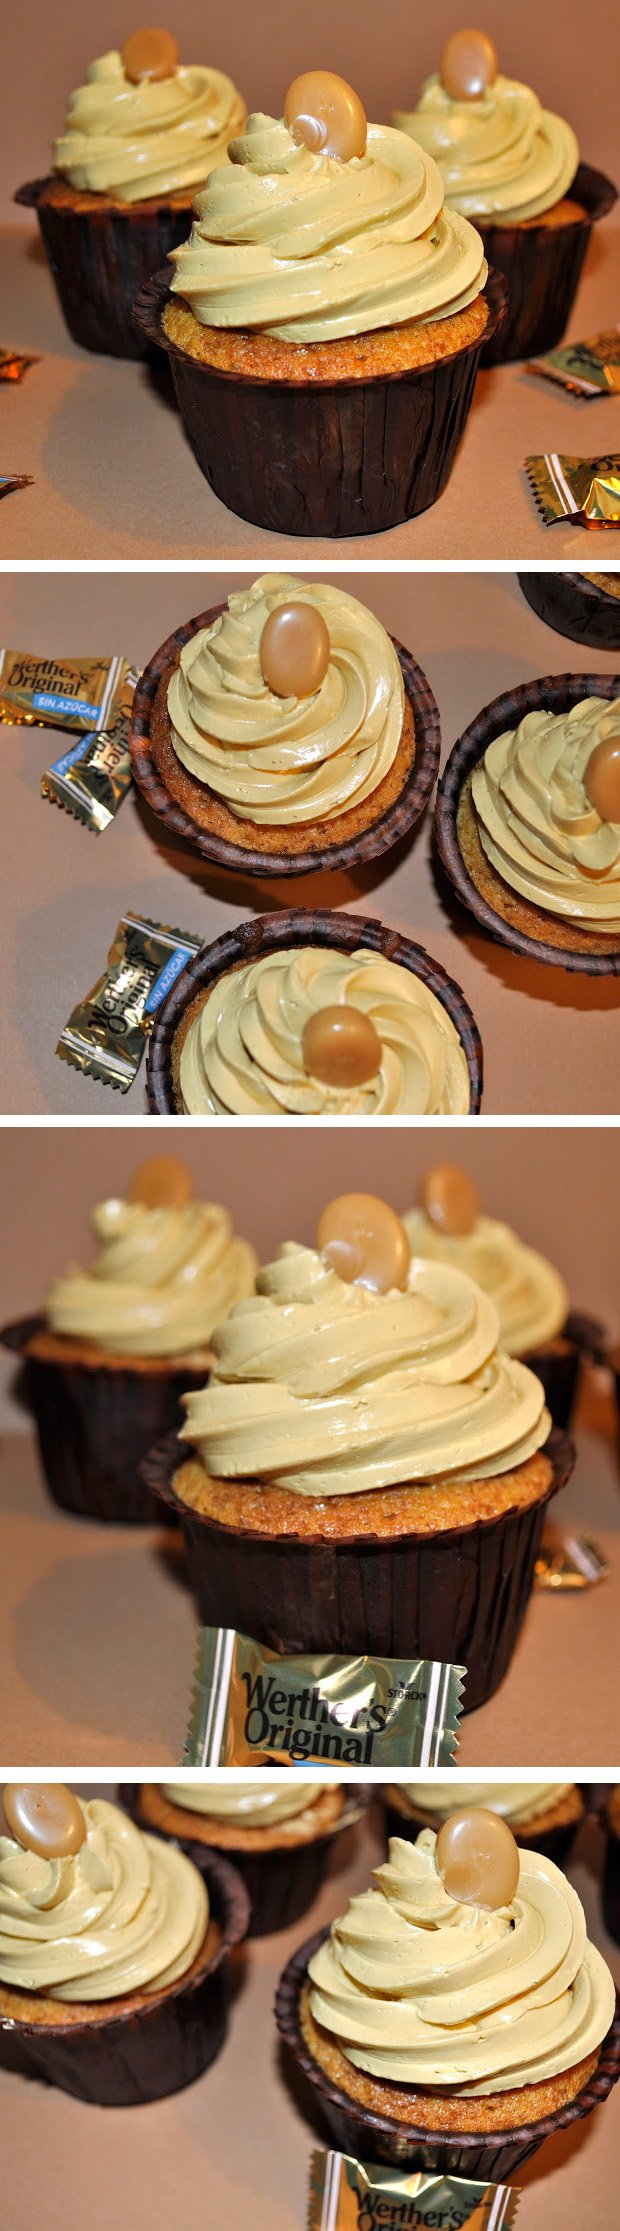 cupcakes-toffee-werthers-pecados-reposteria